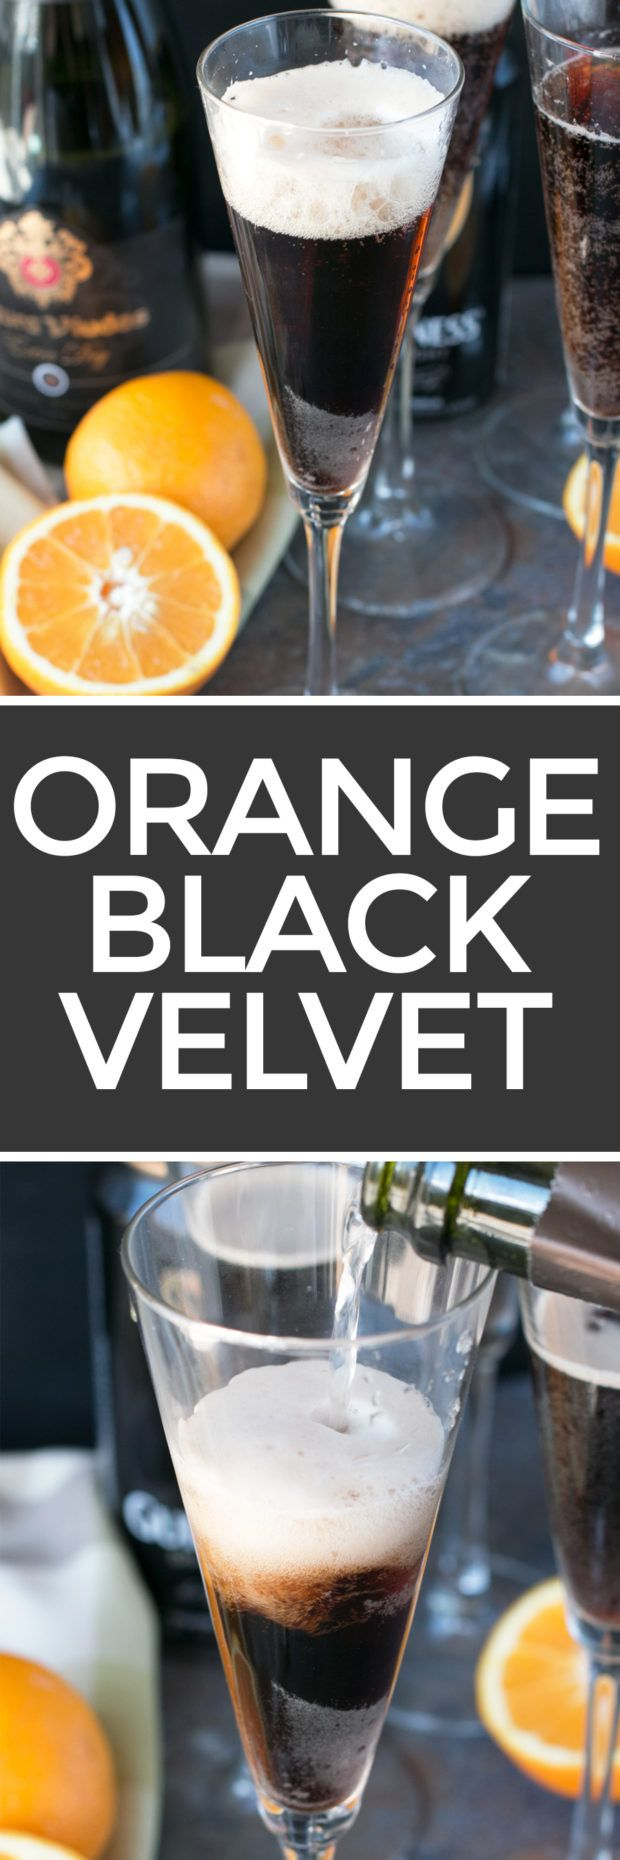 The classic Guinness cocktail gets a citrus twist! With a touch of orange bitters, the Orange Black Velvet is the only cocktail you should be sipping on for St. Patrick's Day! Orange Black Velvet http://www.cakenknife.com/orange-black-velvet/ | cakenknife.com #stpatricksday